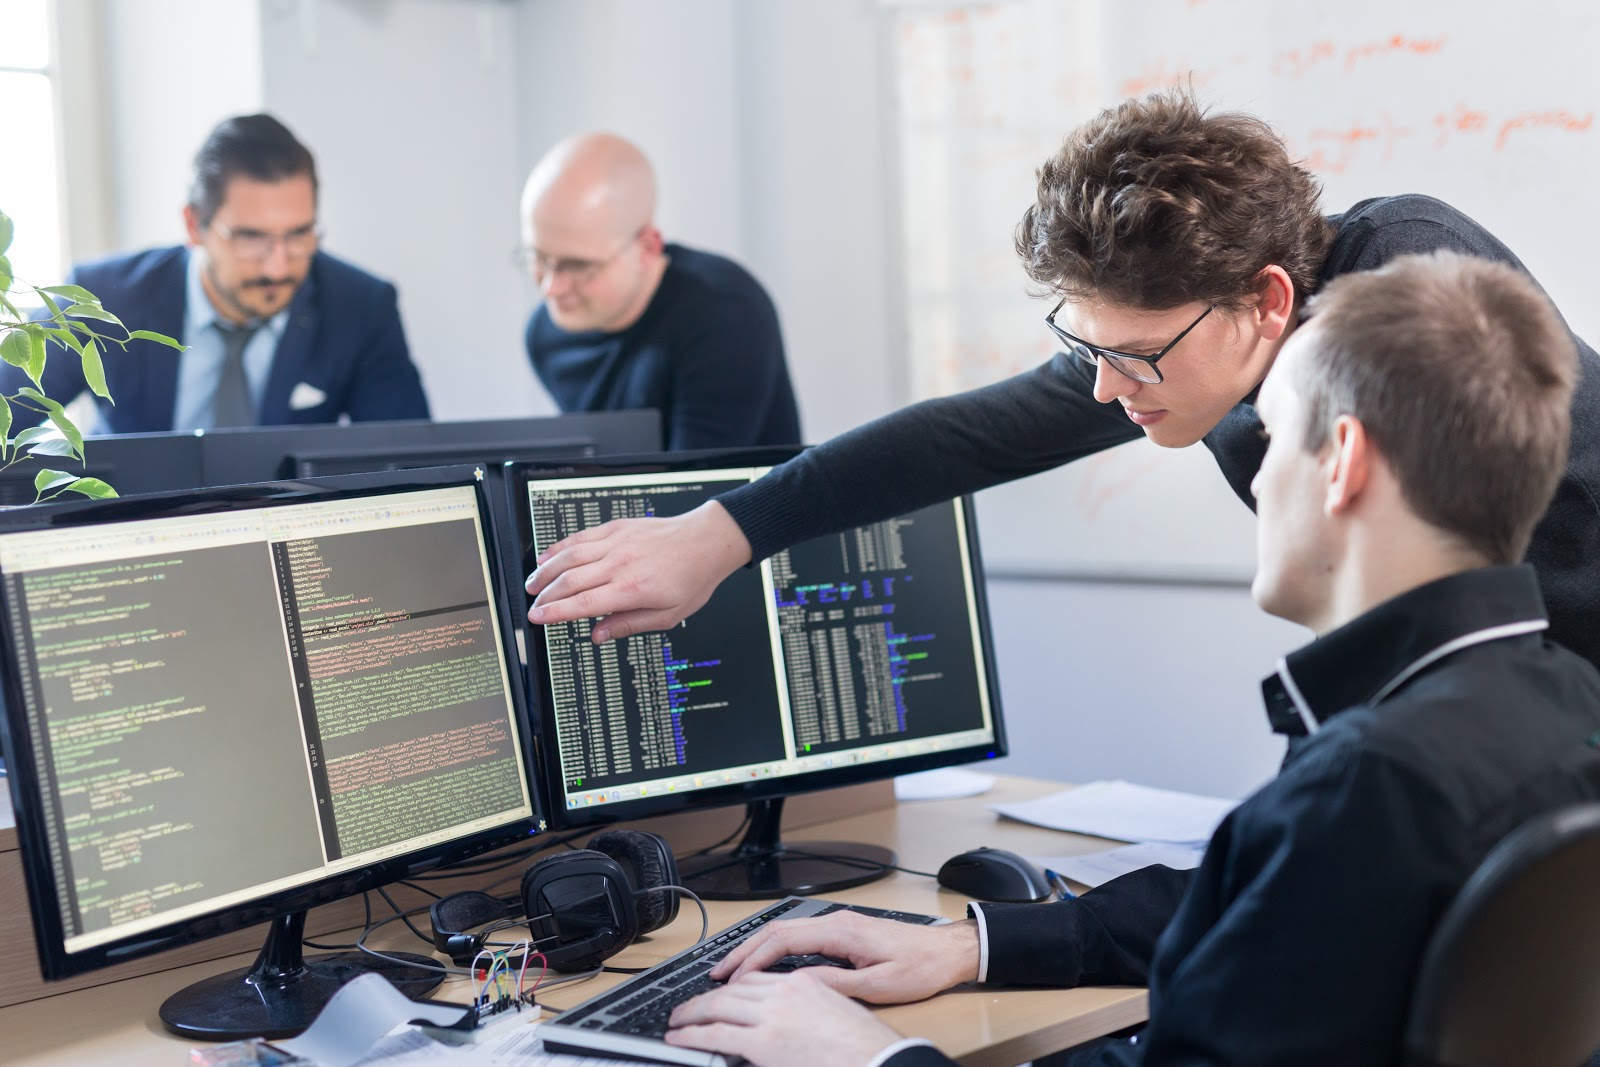 What is Jira: Programmers and Developers programming on a desktop computer